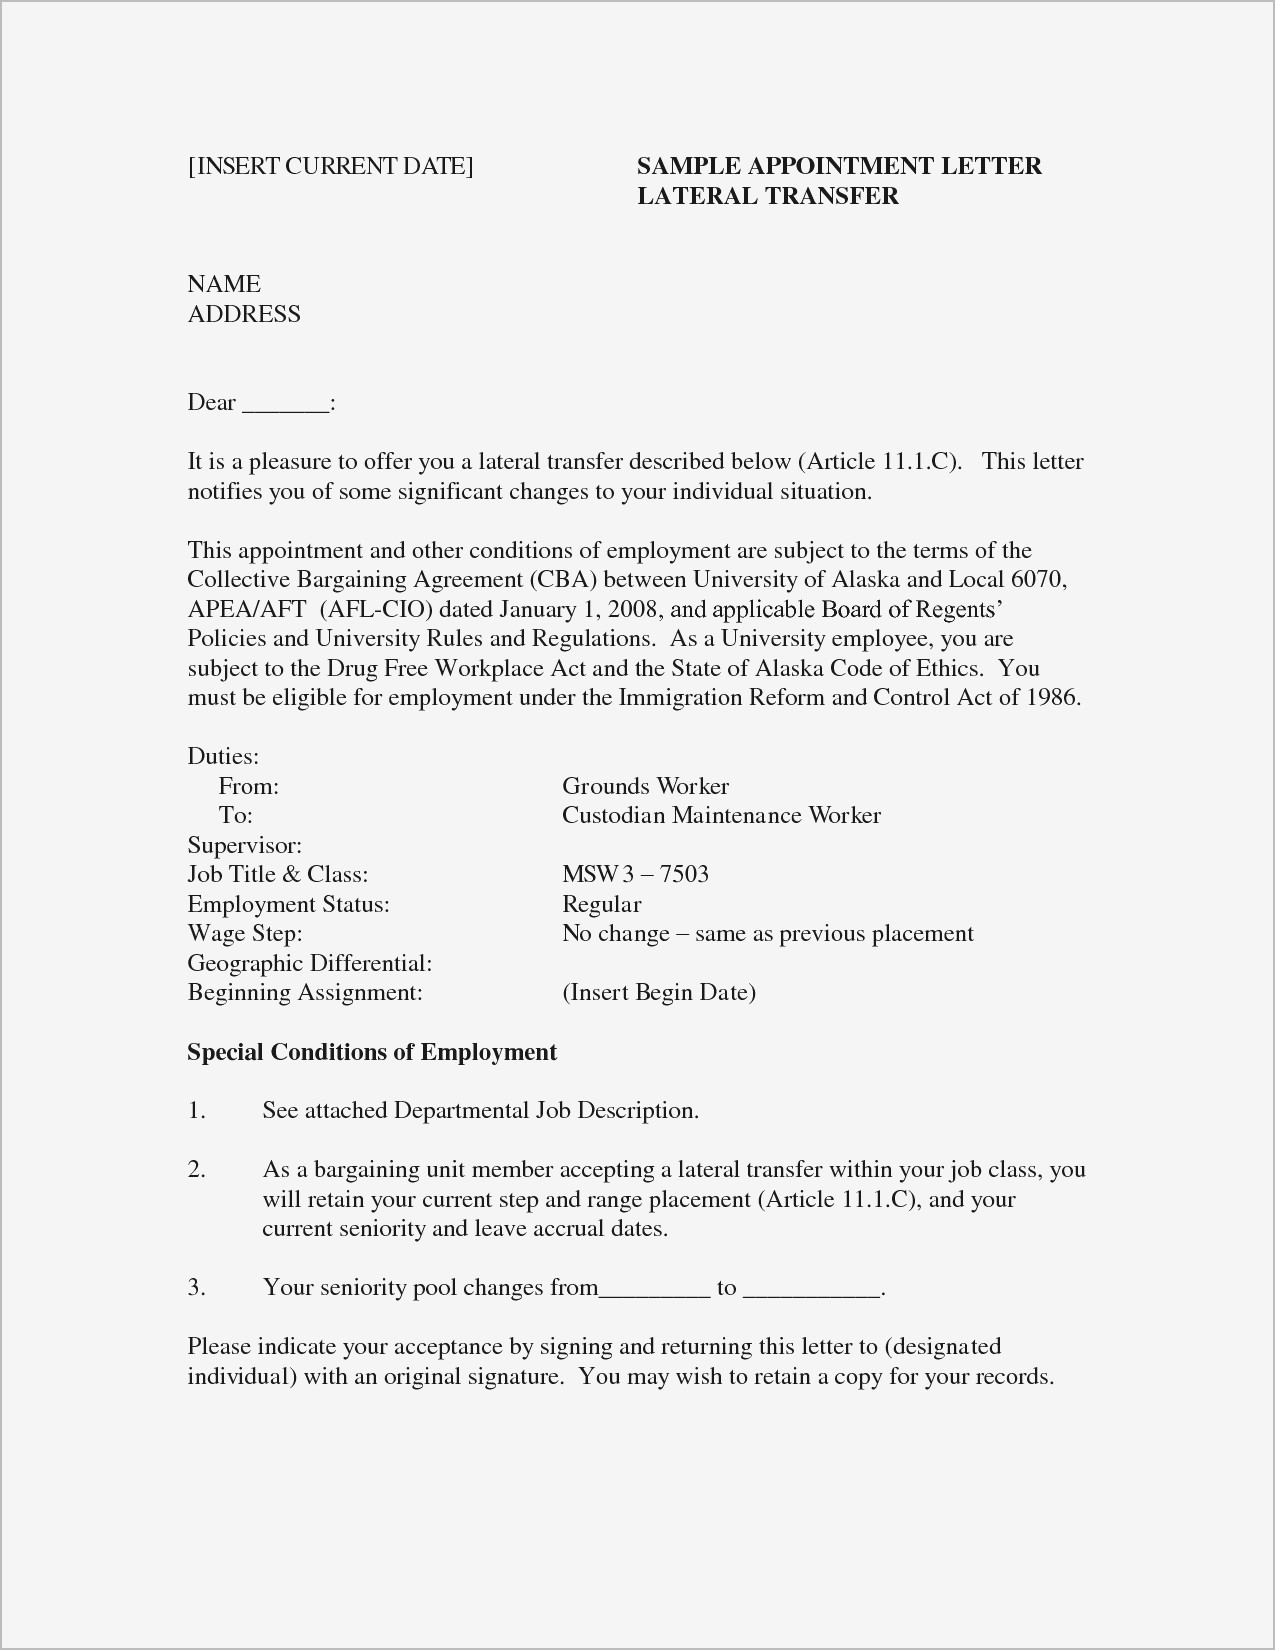 Employment Offer Letter Template California - Beautiful Employment Fer Letter Template